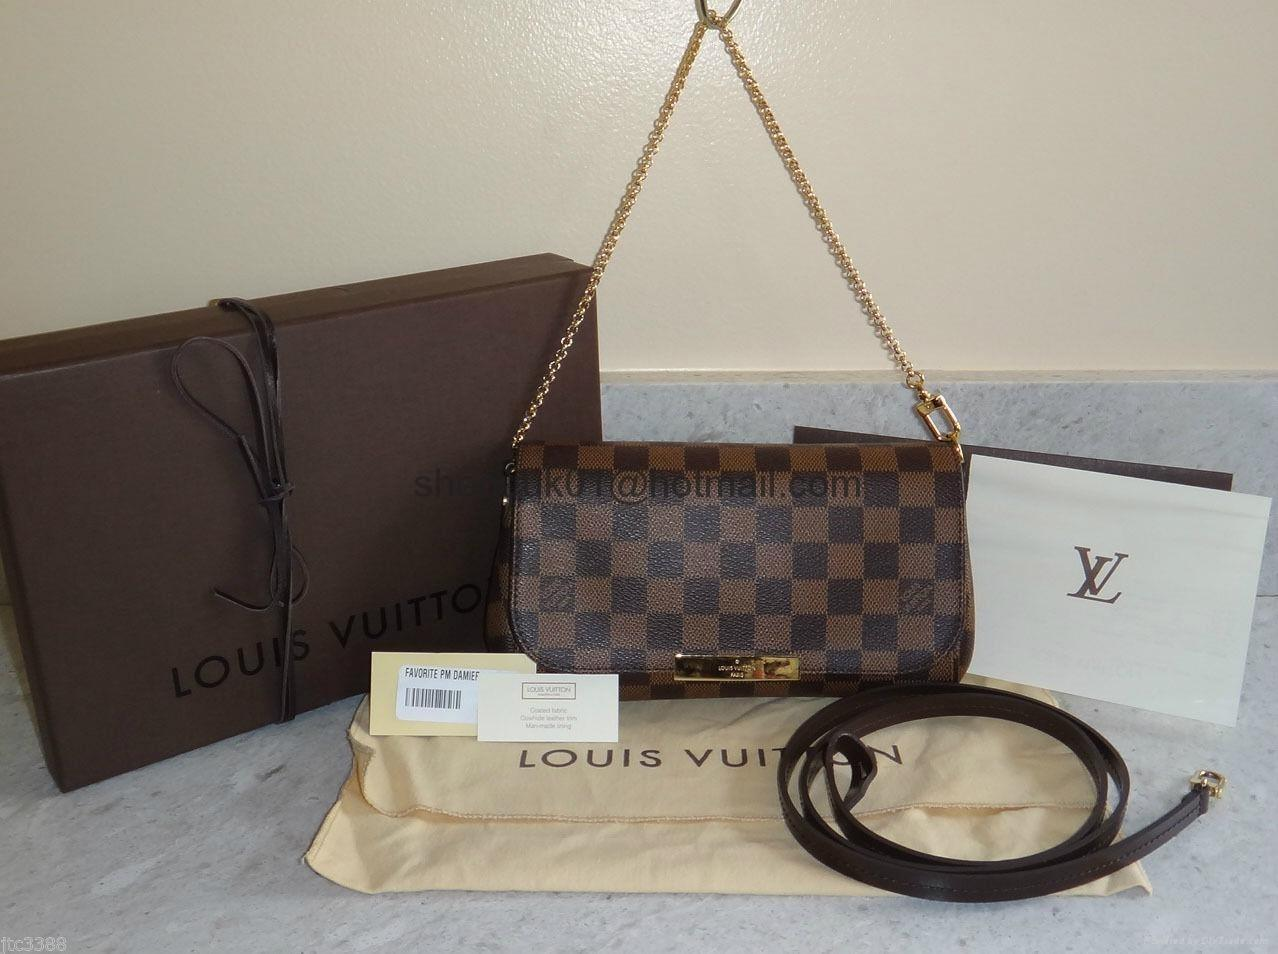 Louis Vuitton Long Purse Strap Replica Hermes Birkin